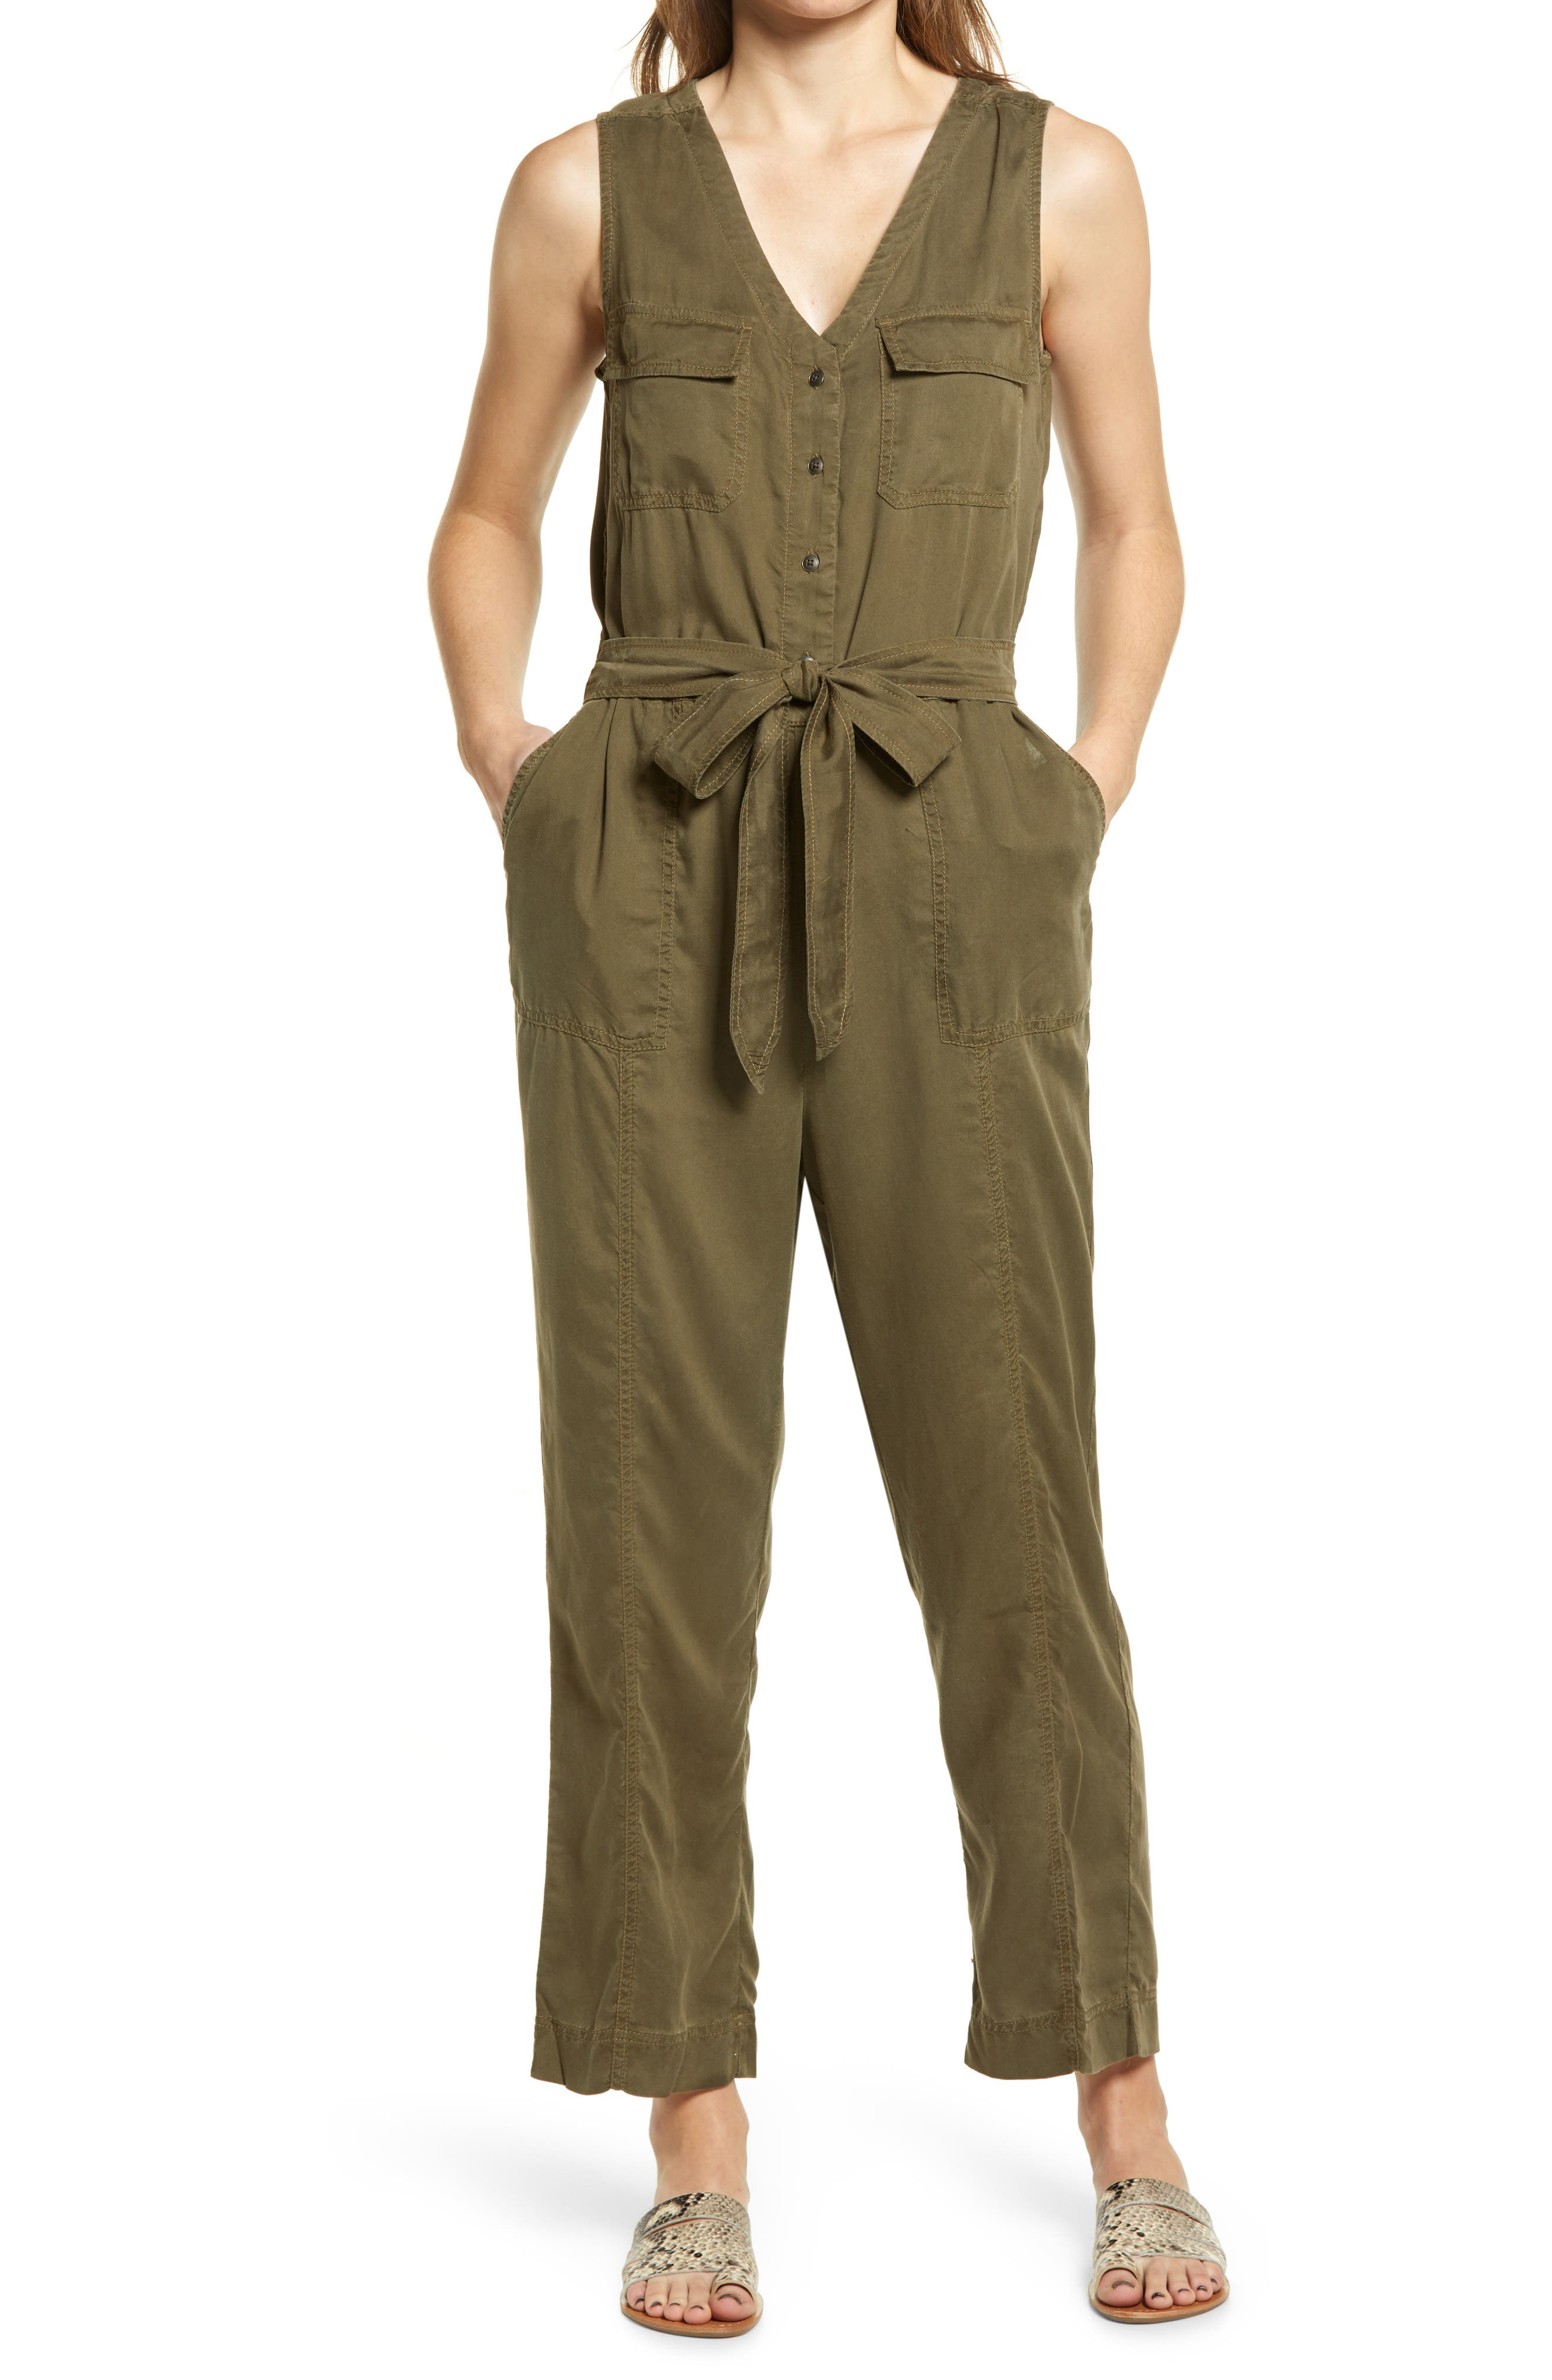 yellow farm kids pants from eco jersey sleeveless jumpsuit for tying